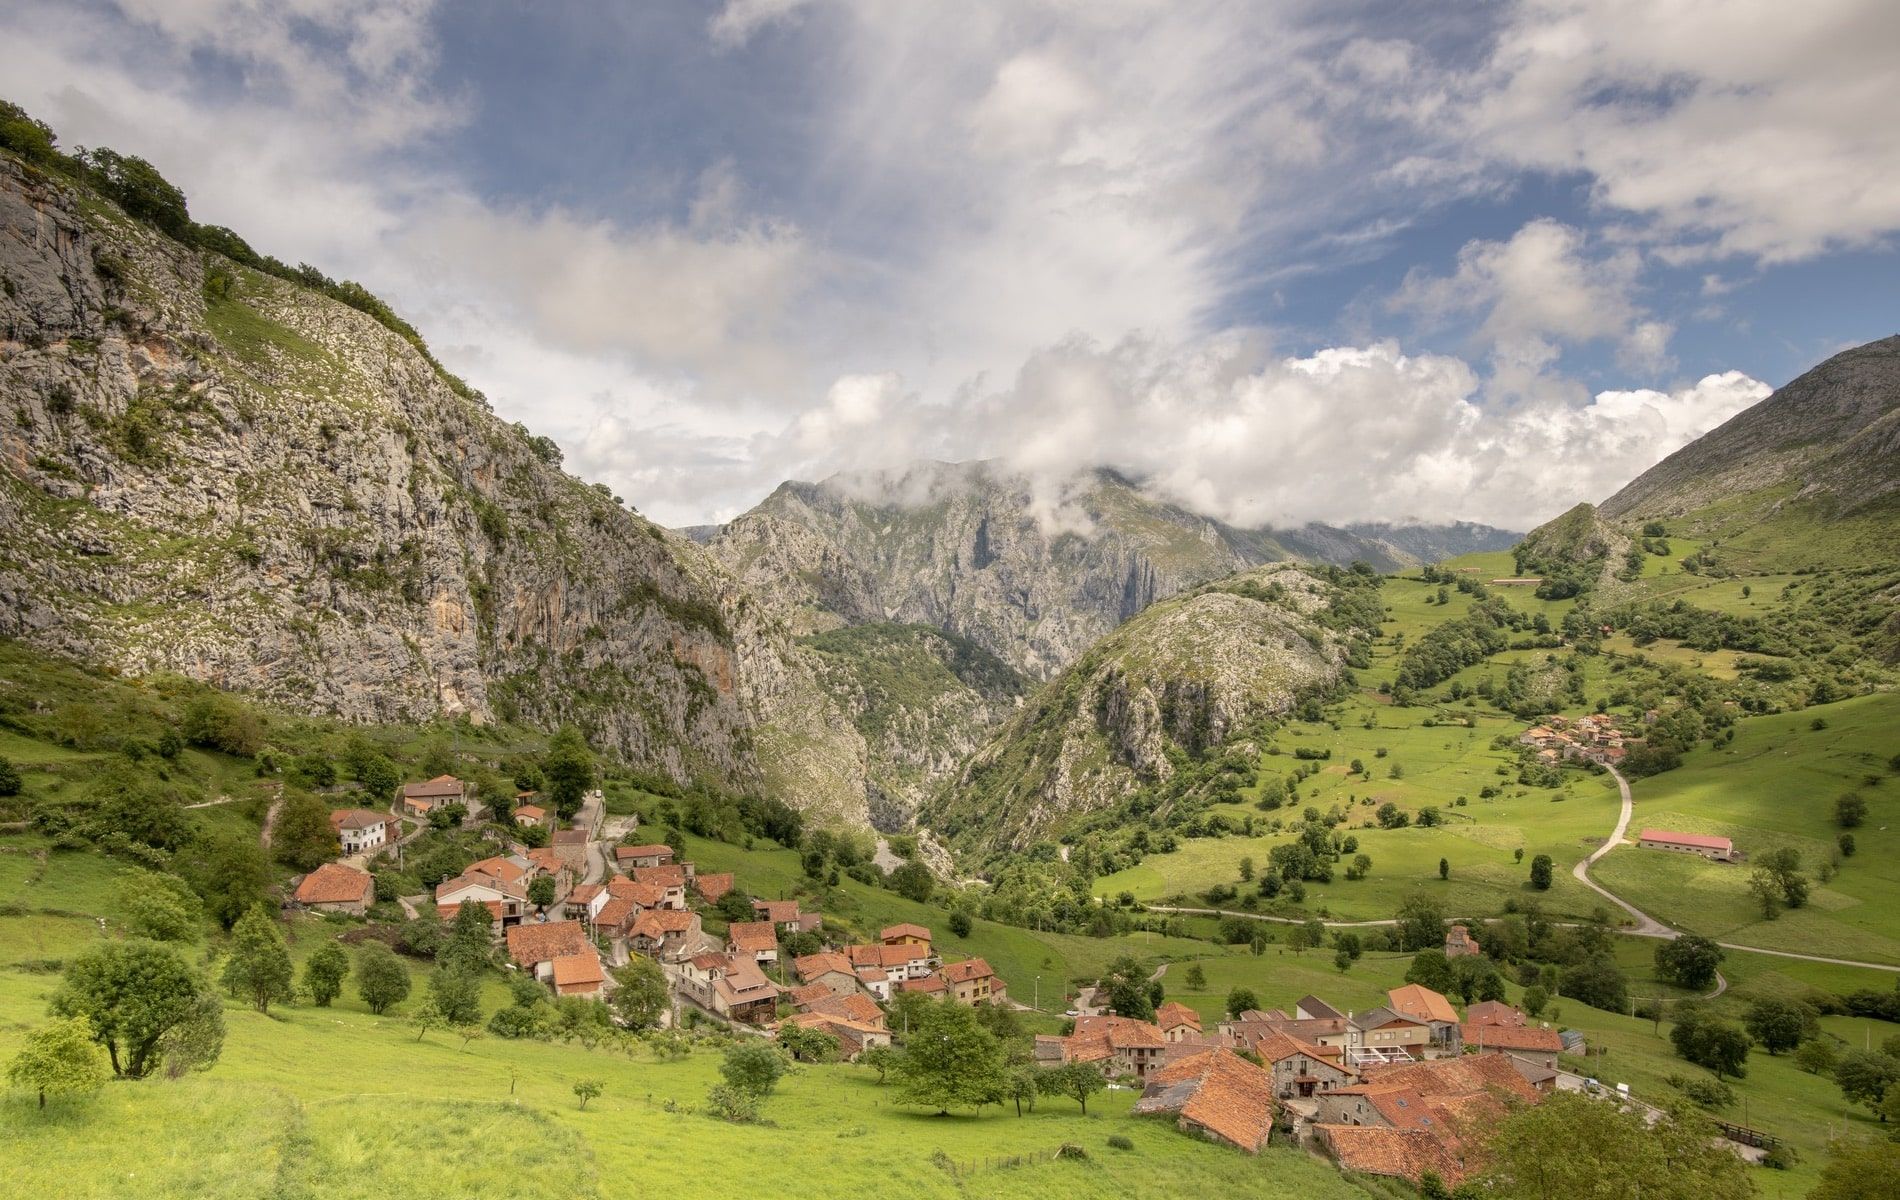 The valleys of the Picos de Europa (Peaks of Europe) in northern Spain are lush and green, full of quaint villages, and perfect for hiking.